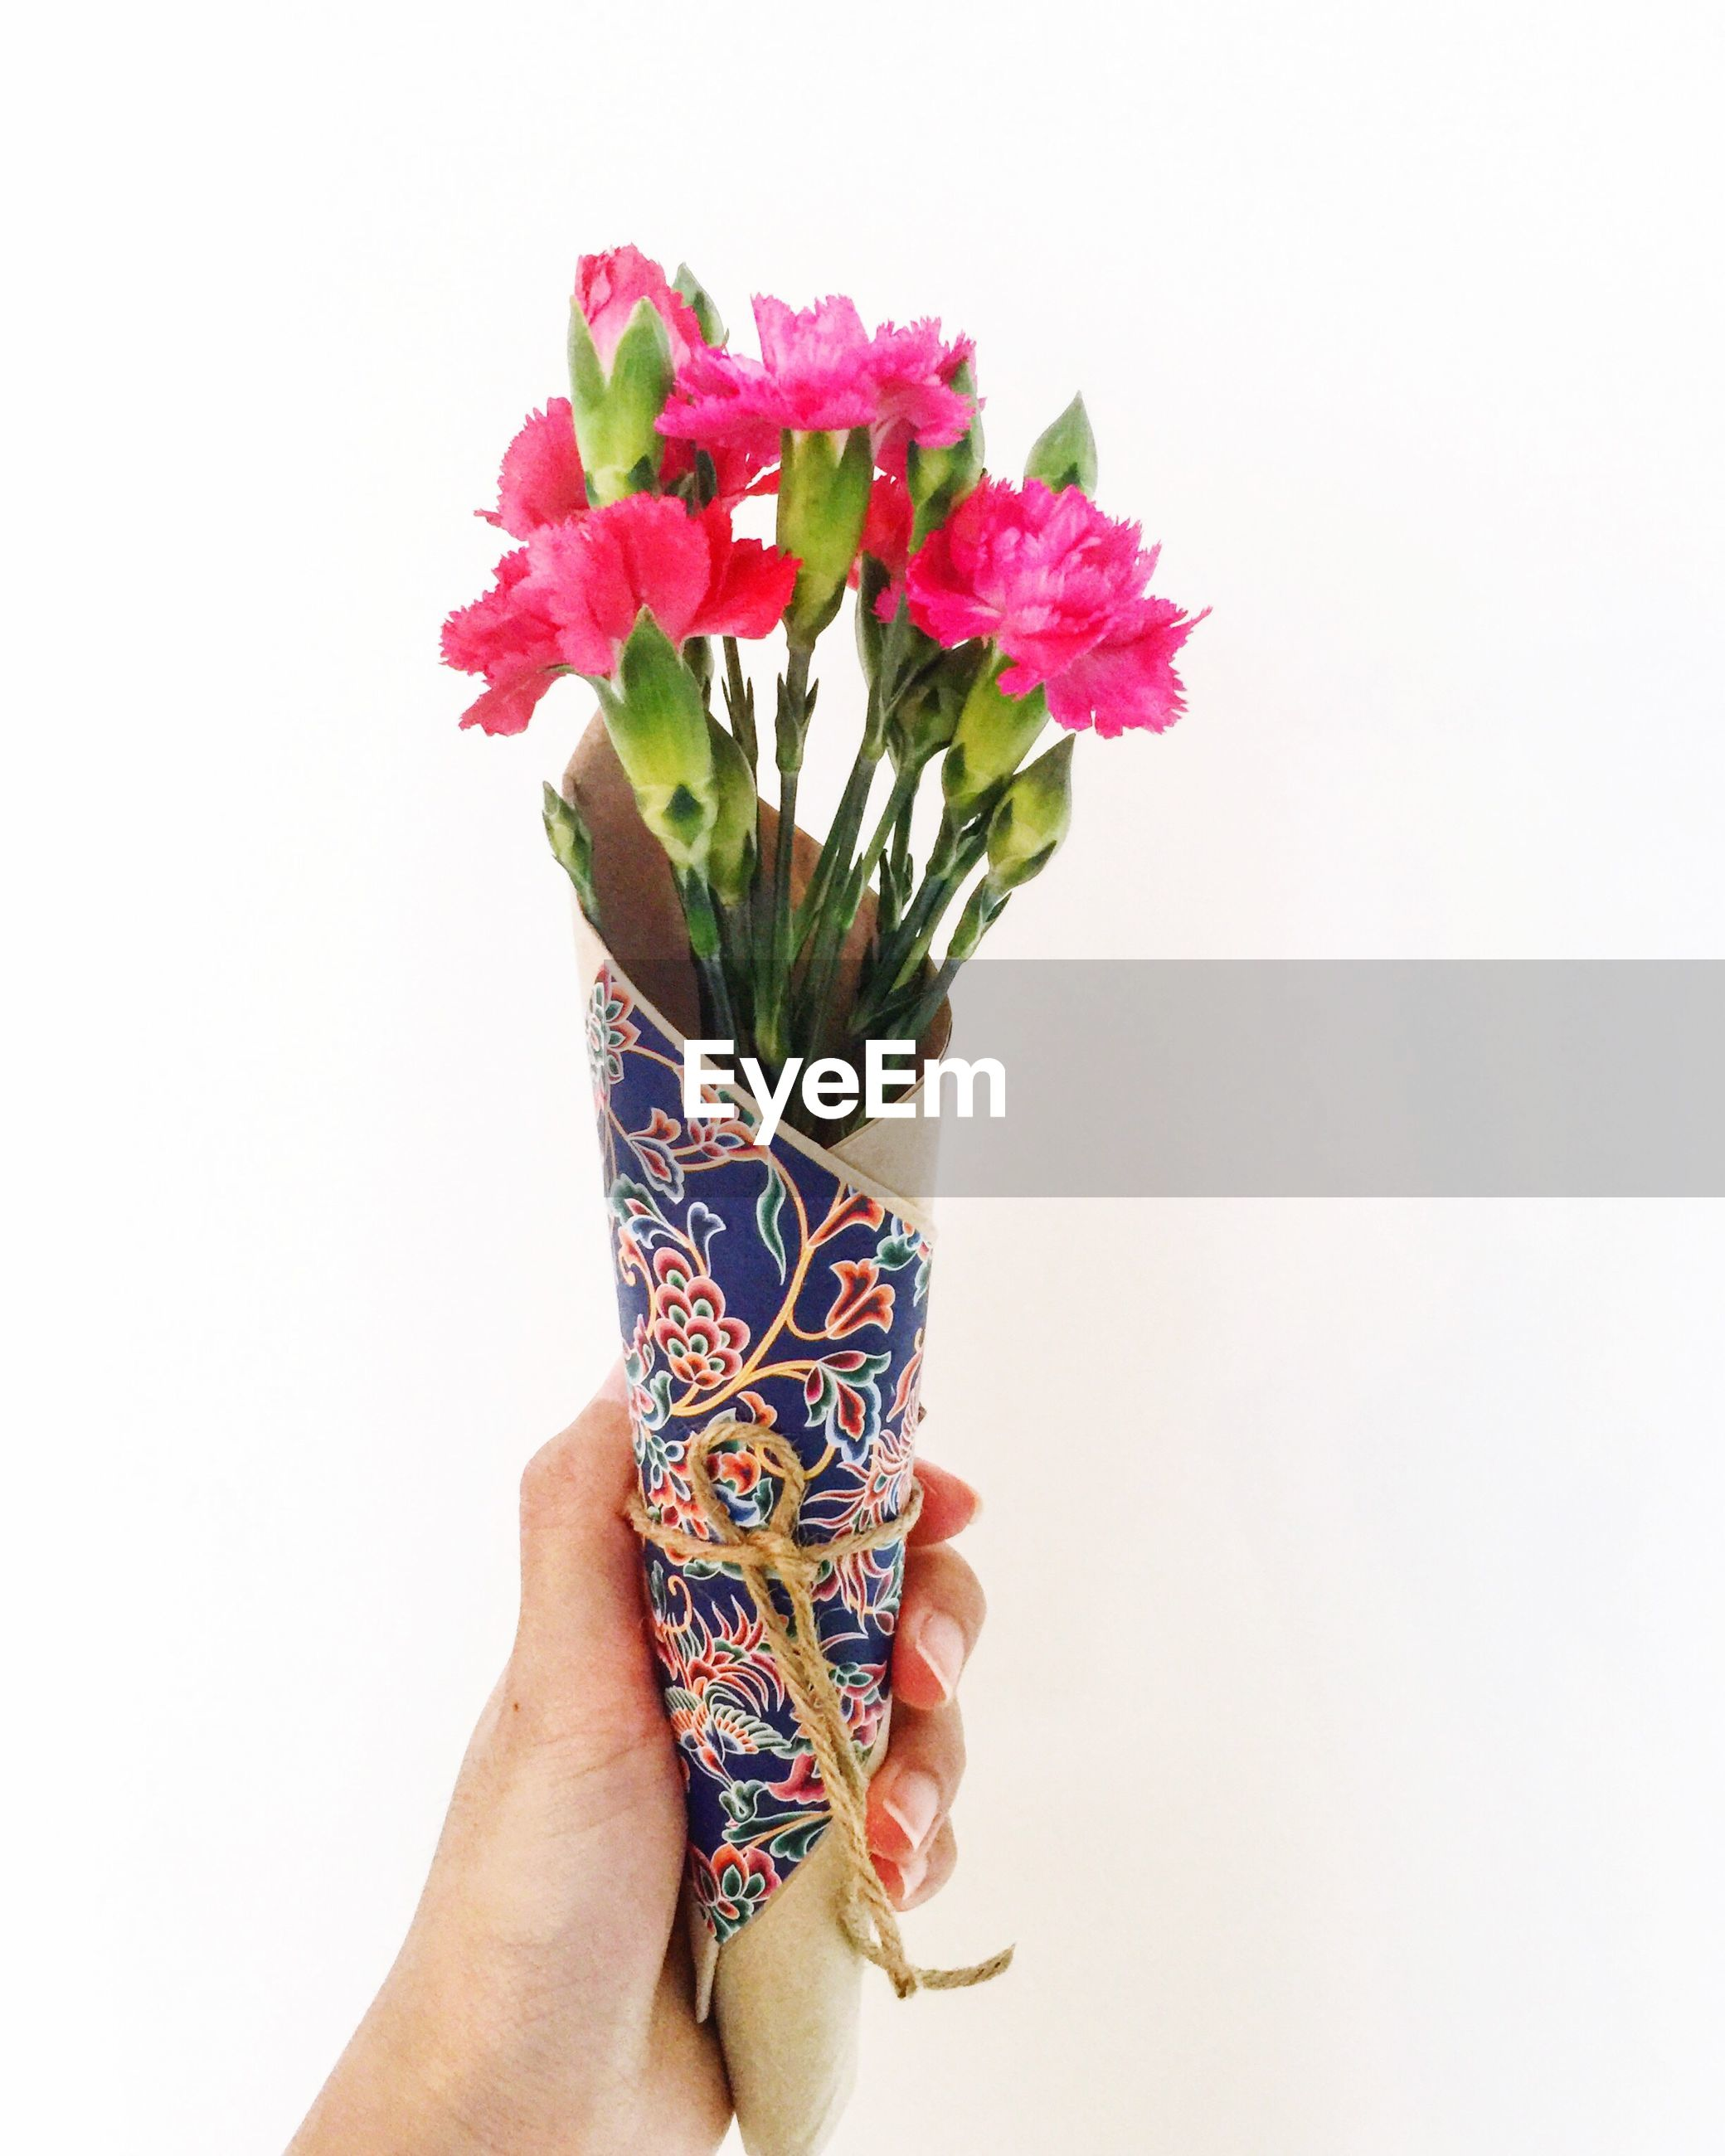 Cropped hand holding bouquet against white background